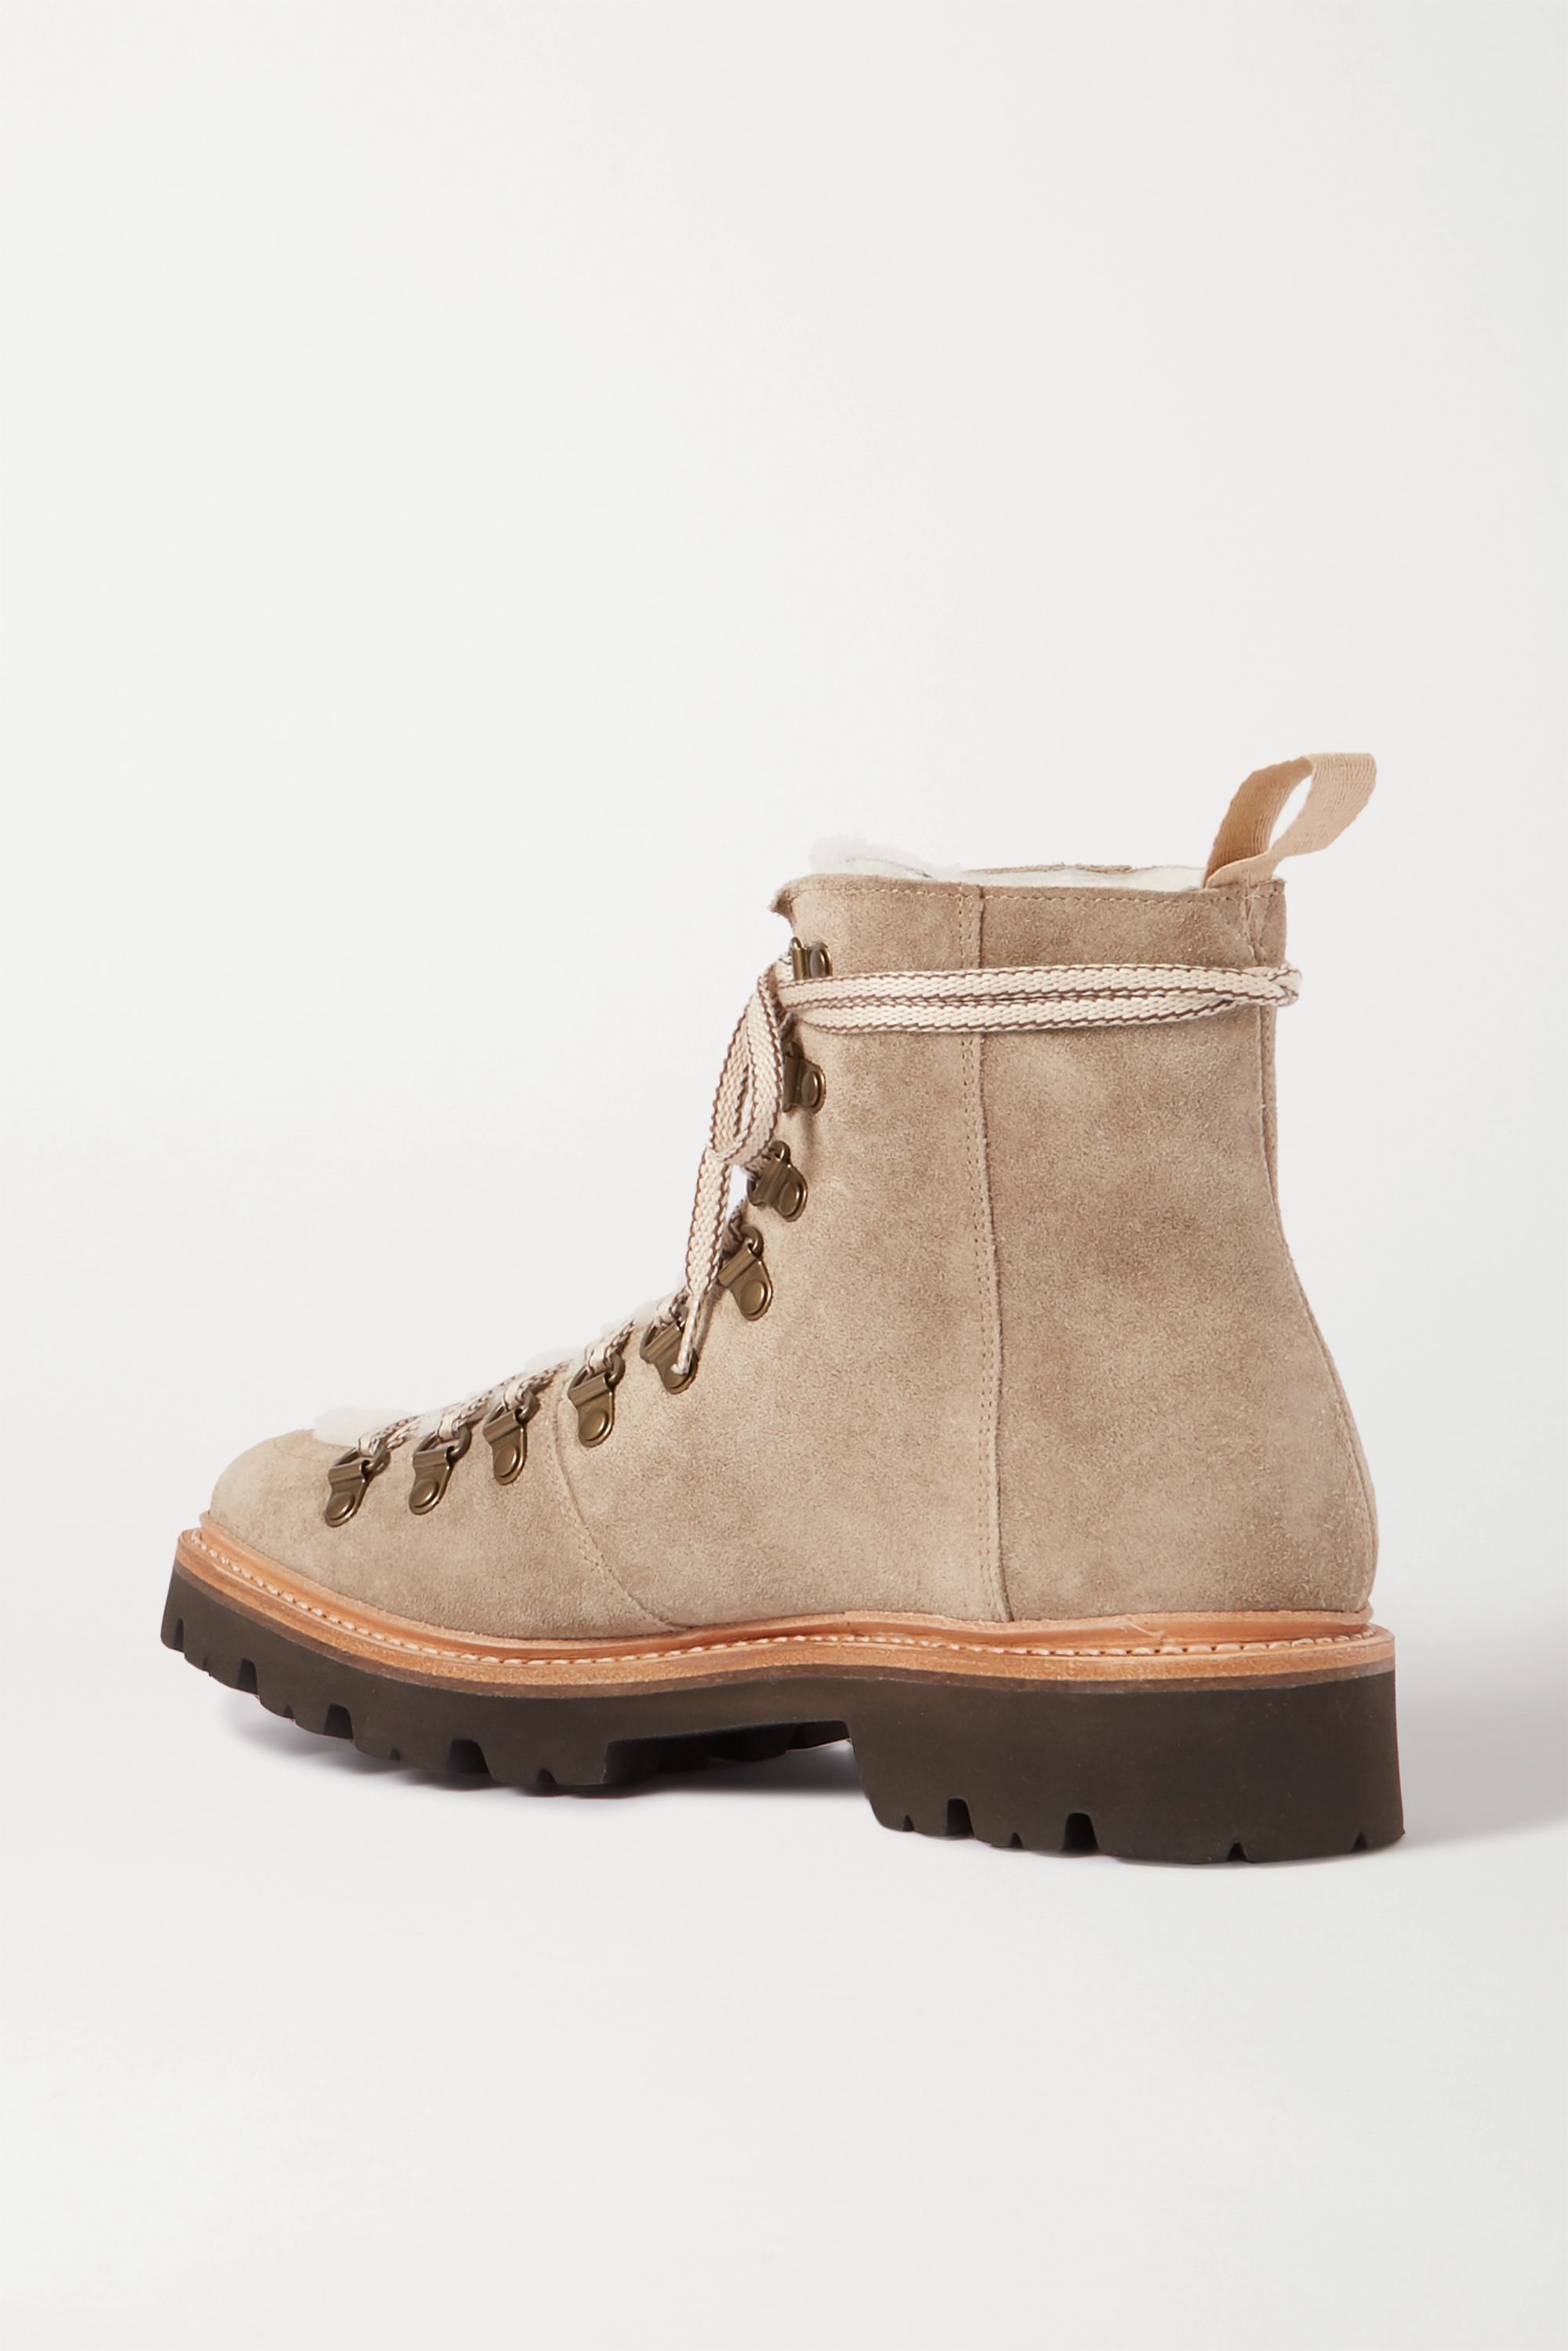 Grenson Nanette shearling-trimmed suede boots